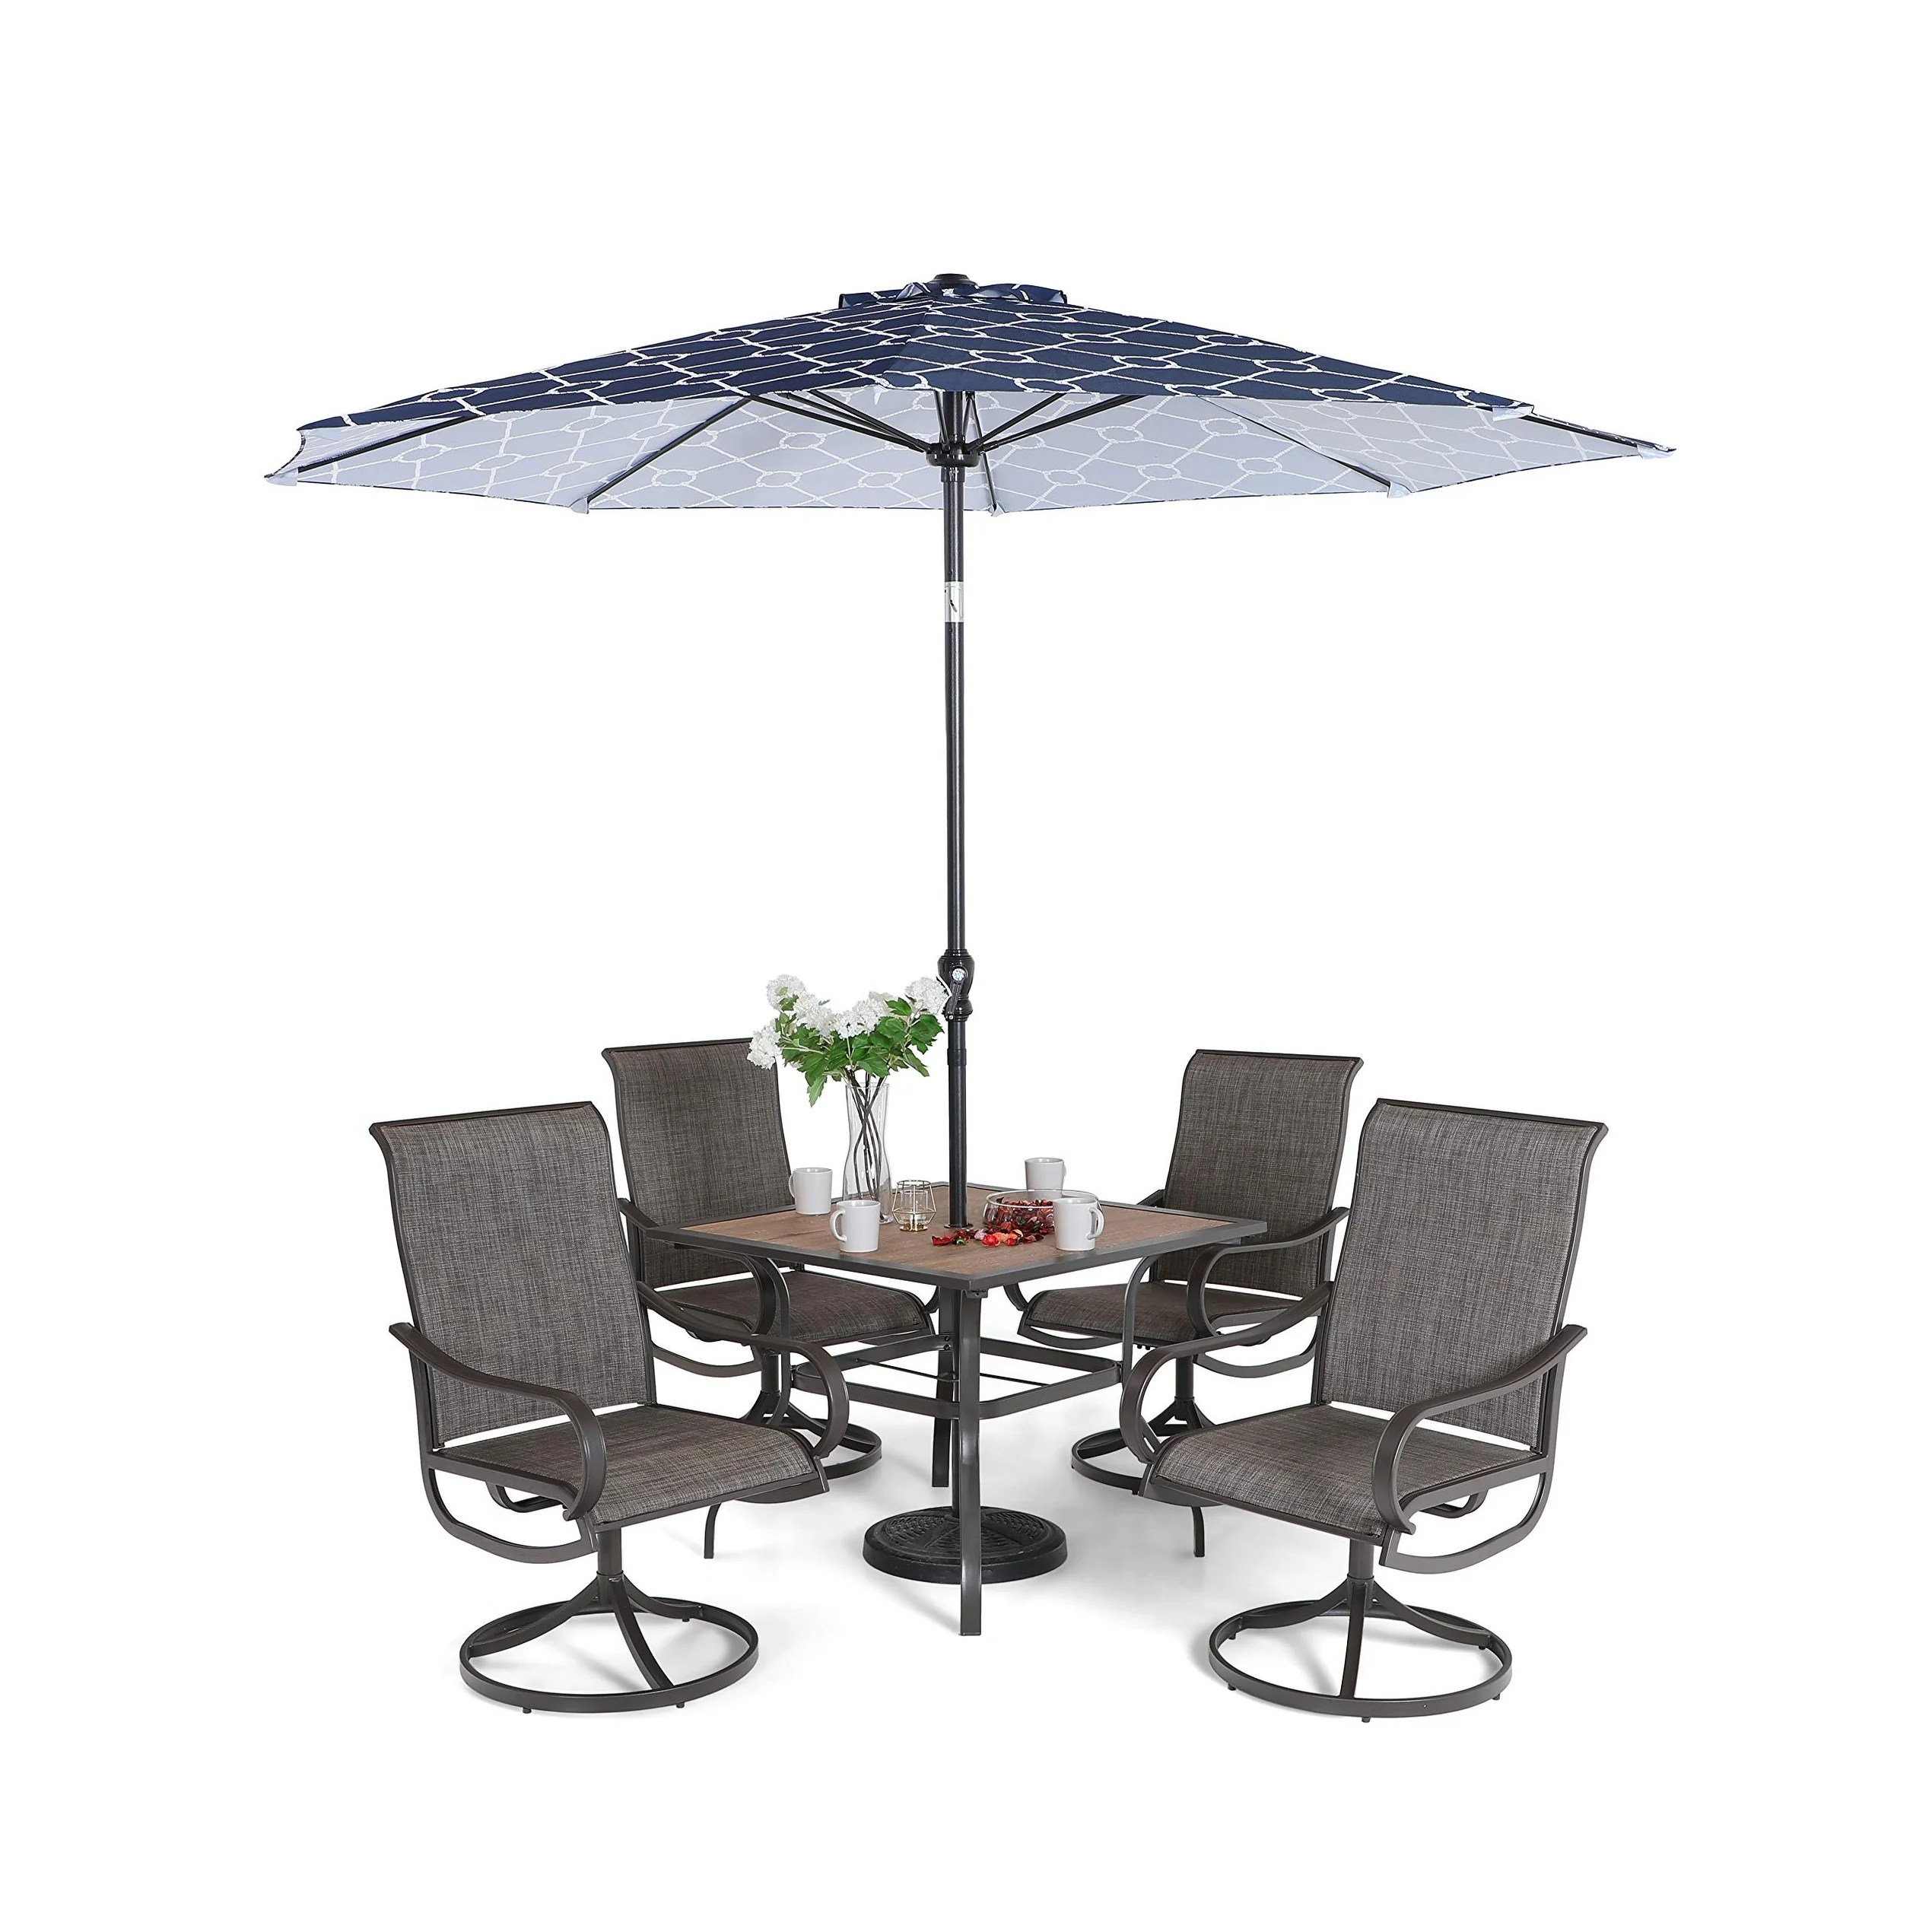 Turin 10 Piece Swivel Patio Dining Set By Hom Furniture